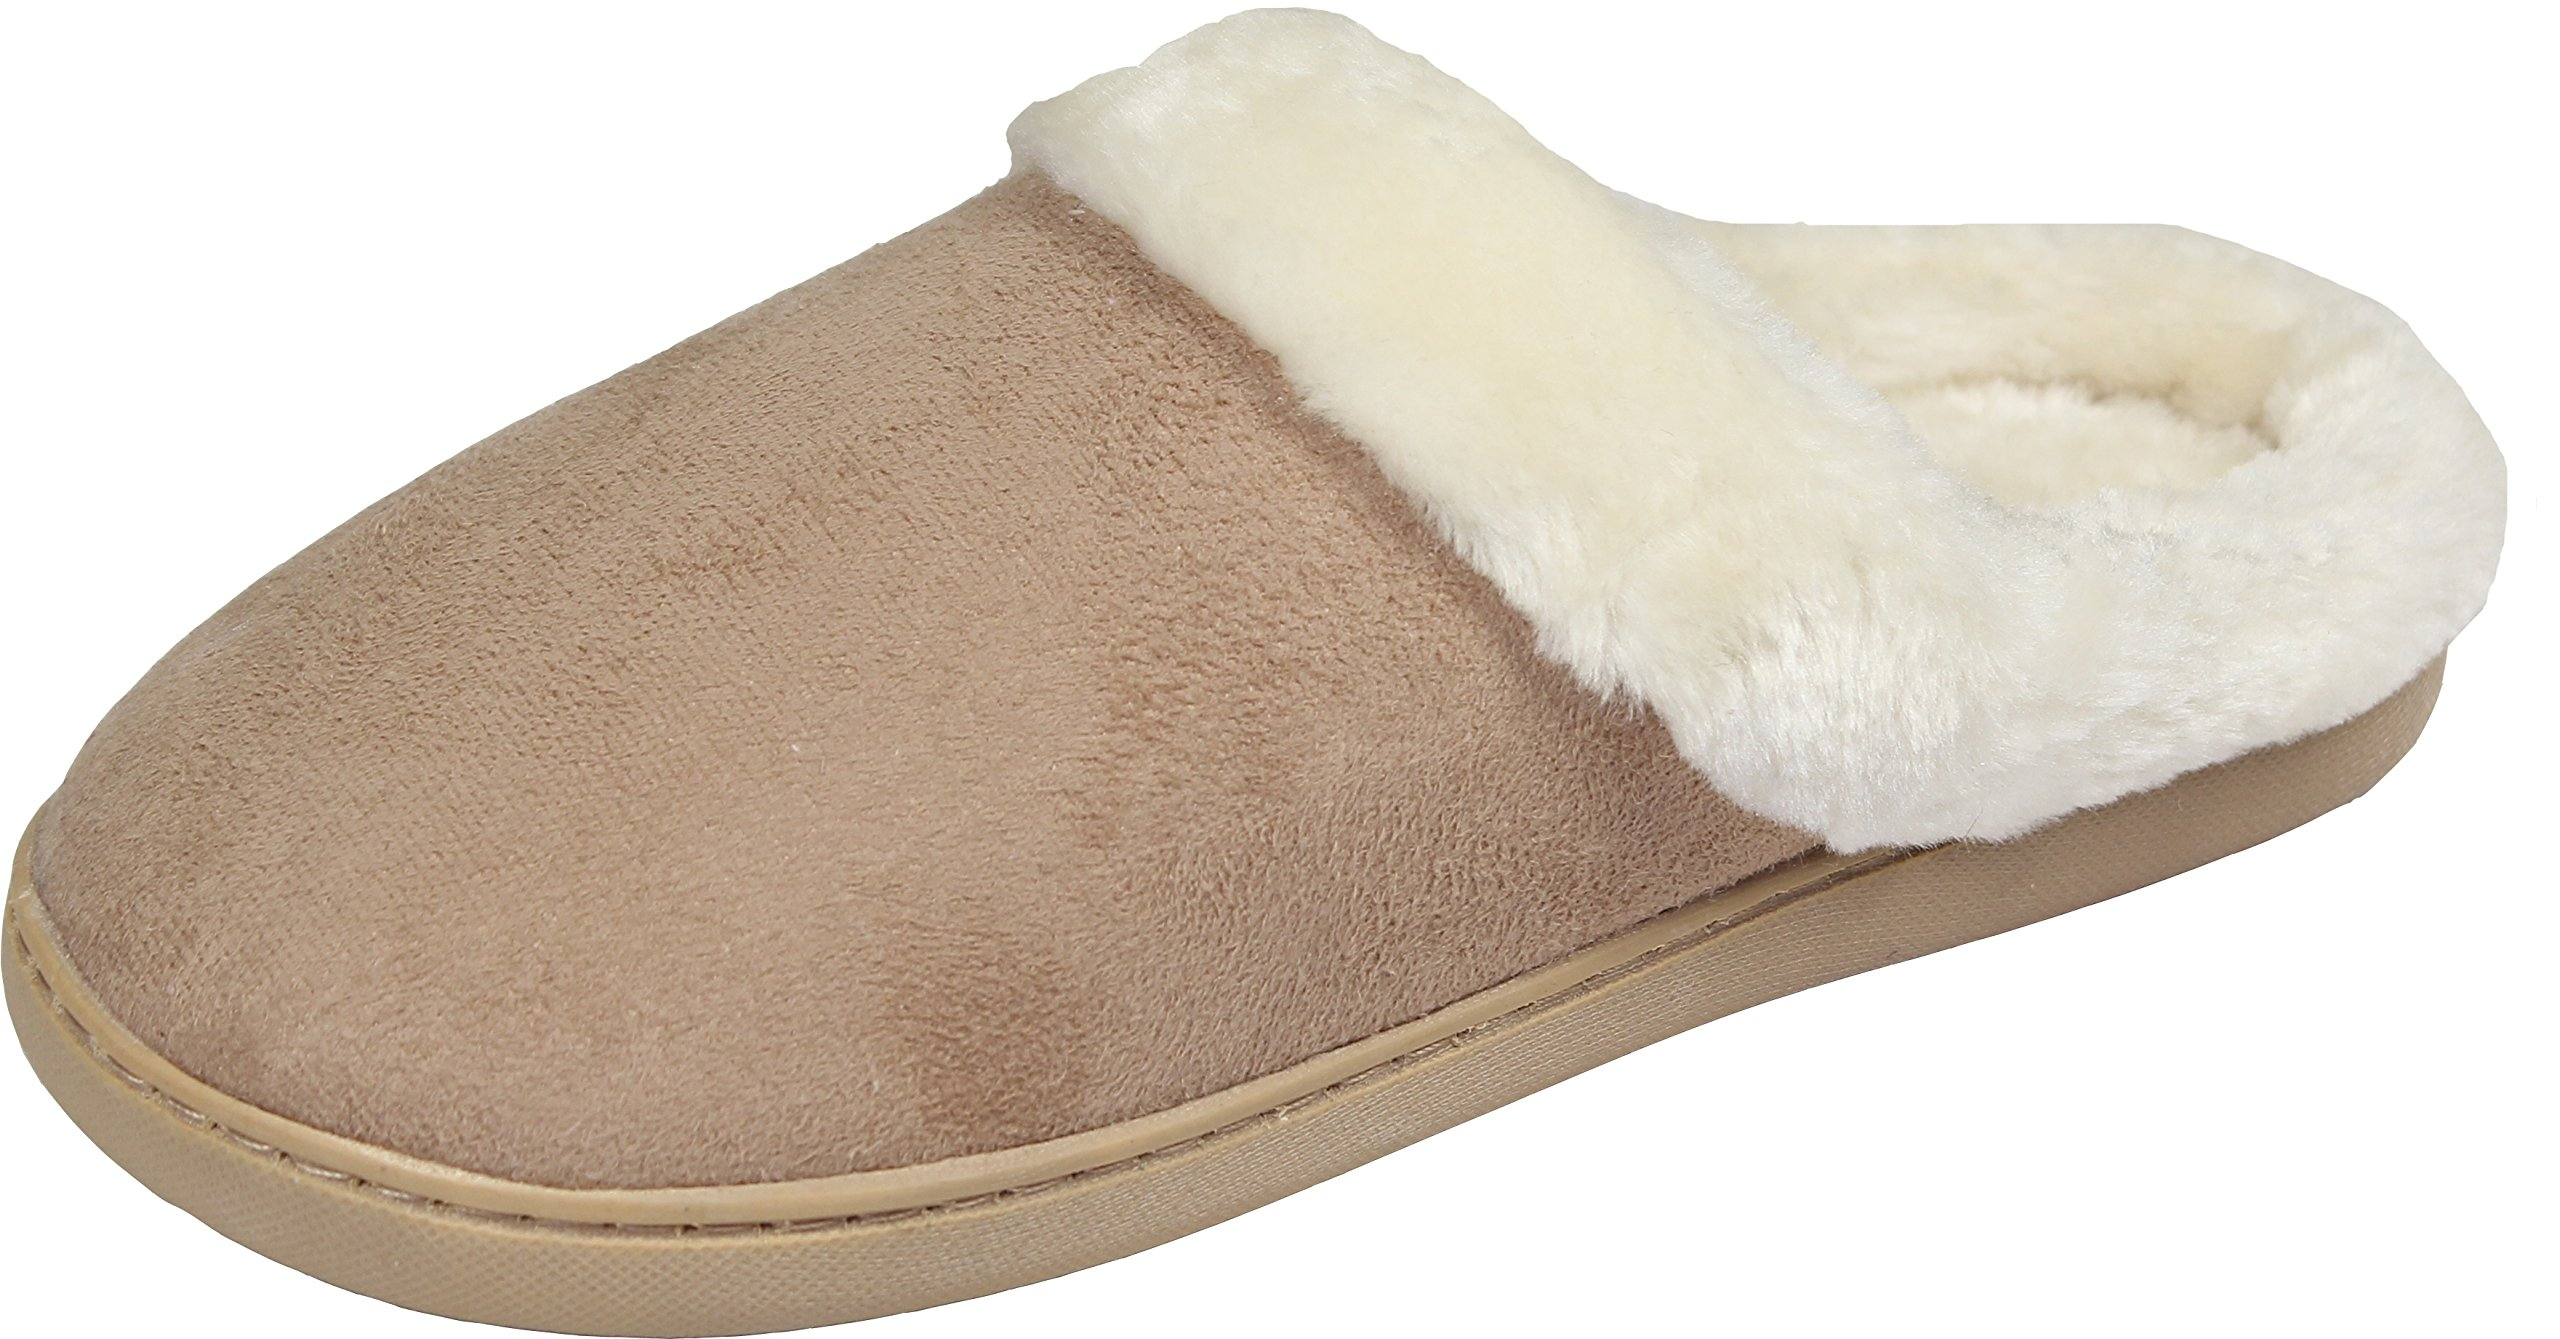 Luxehome Women's Cozy Fleece House Footwear/Slippers(1-08) (XXL/9-10 US, Apricot)